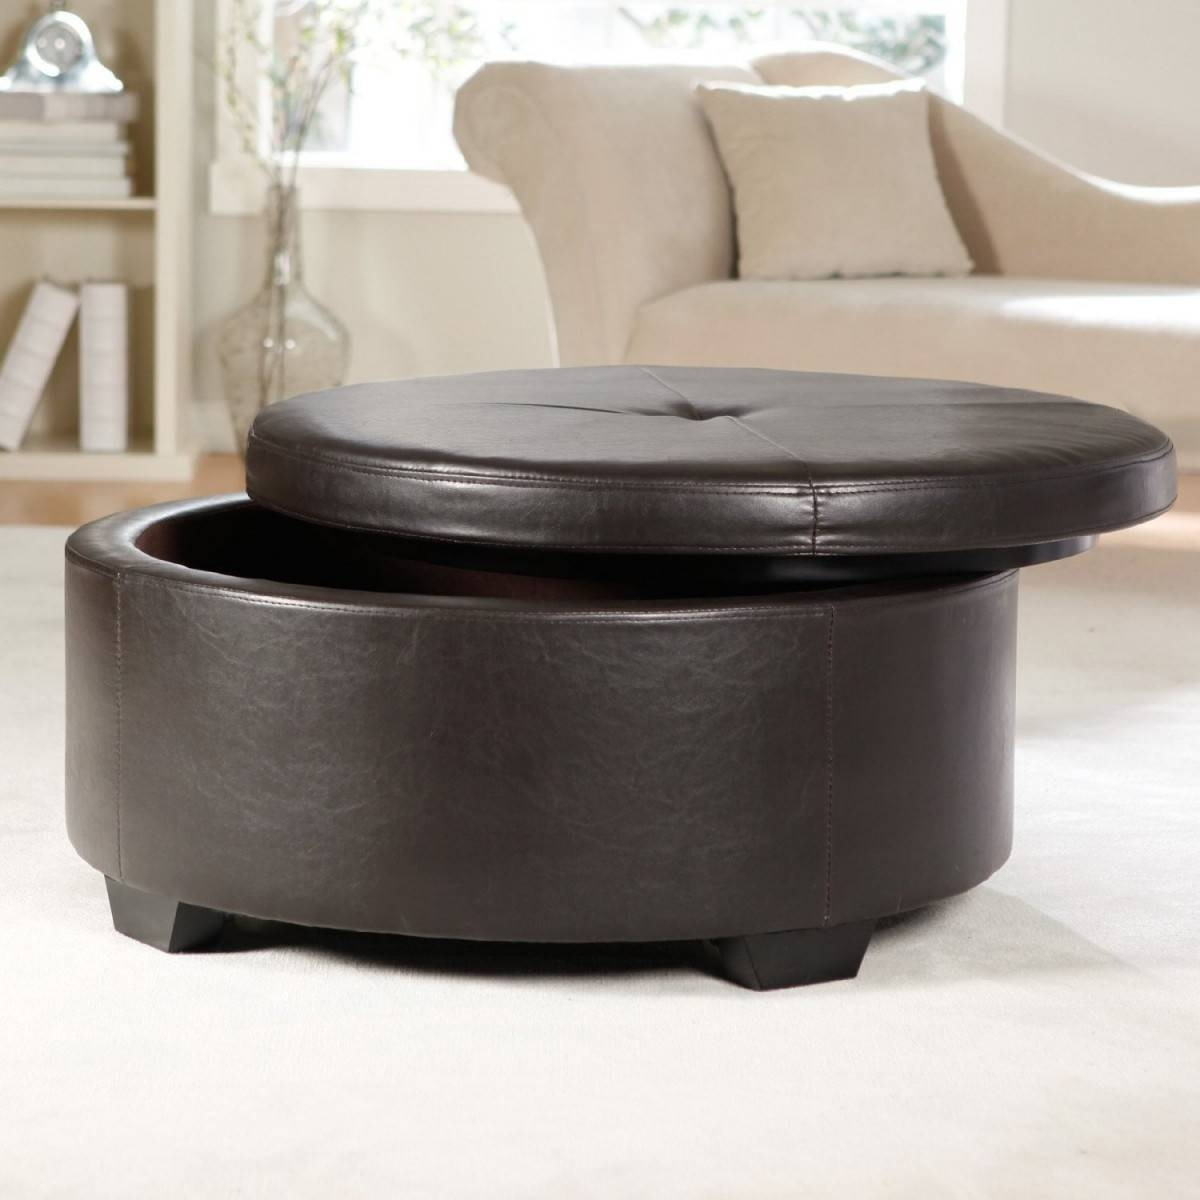 Round Ottoman Coffee Table With Storage - Starrkingschool intended for Circular Coffee Tables With Storage (Image 26 of 30)